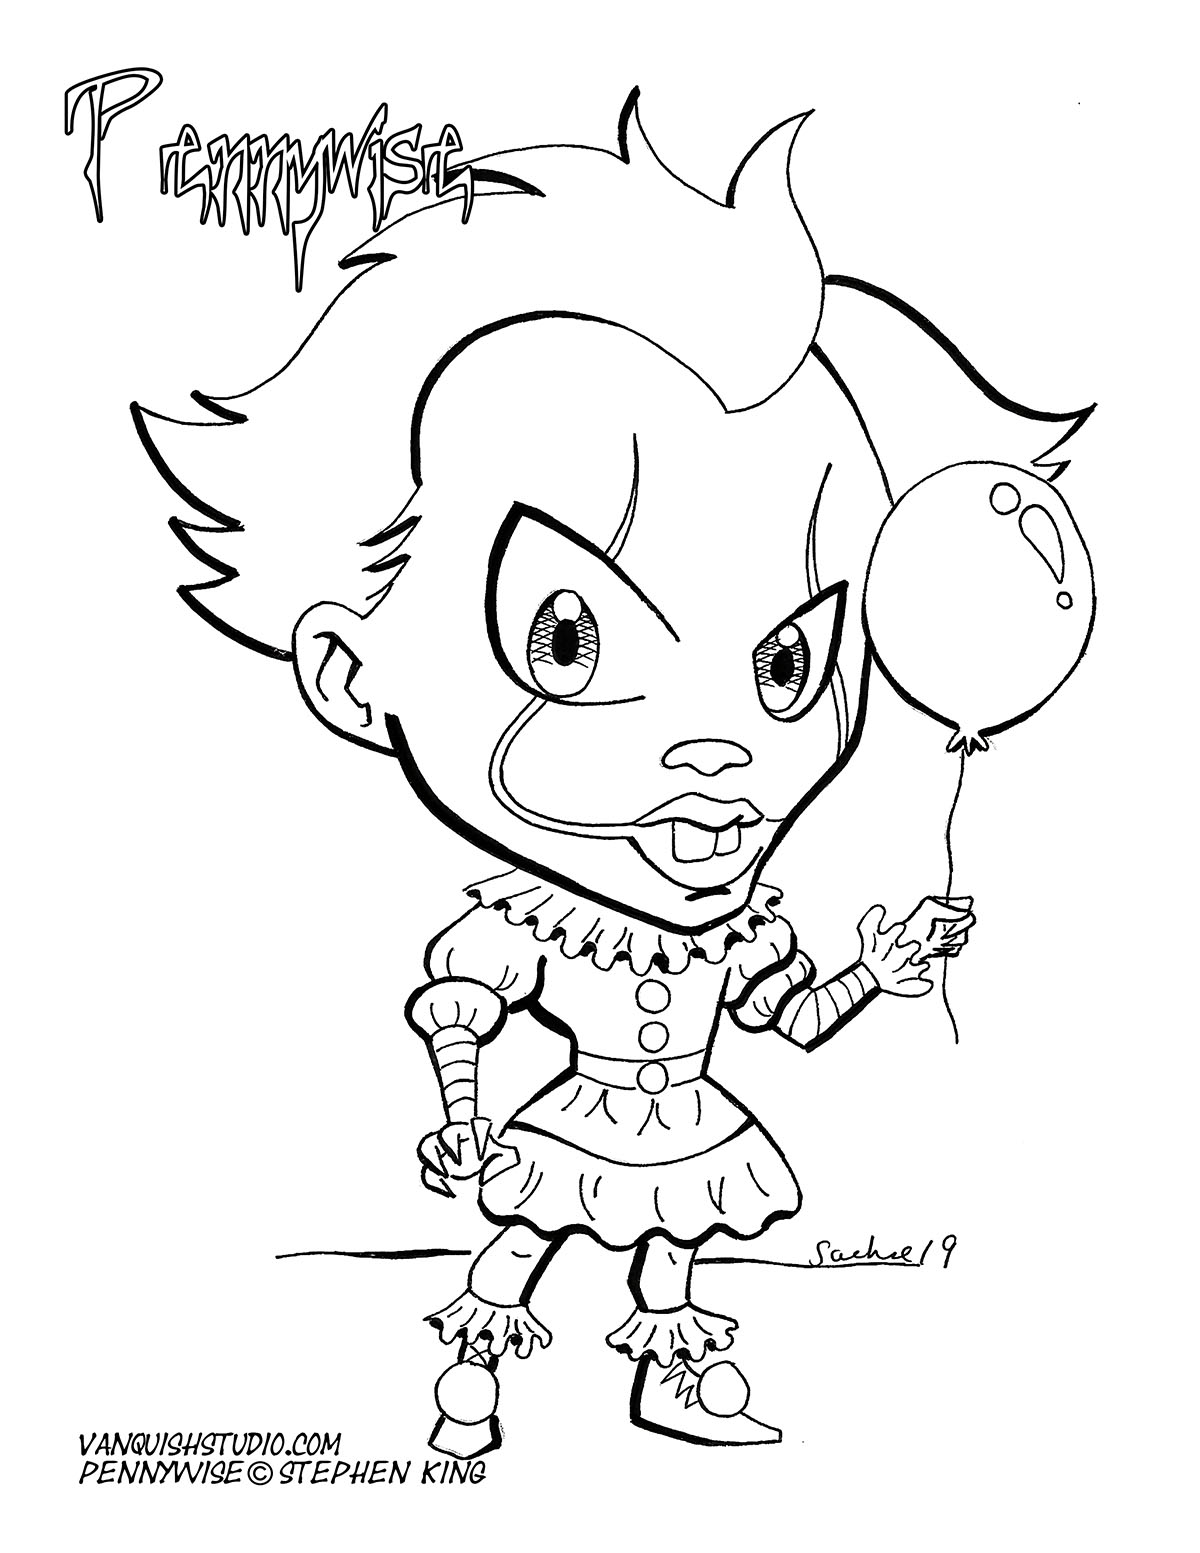 Pennywise Coloring page